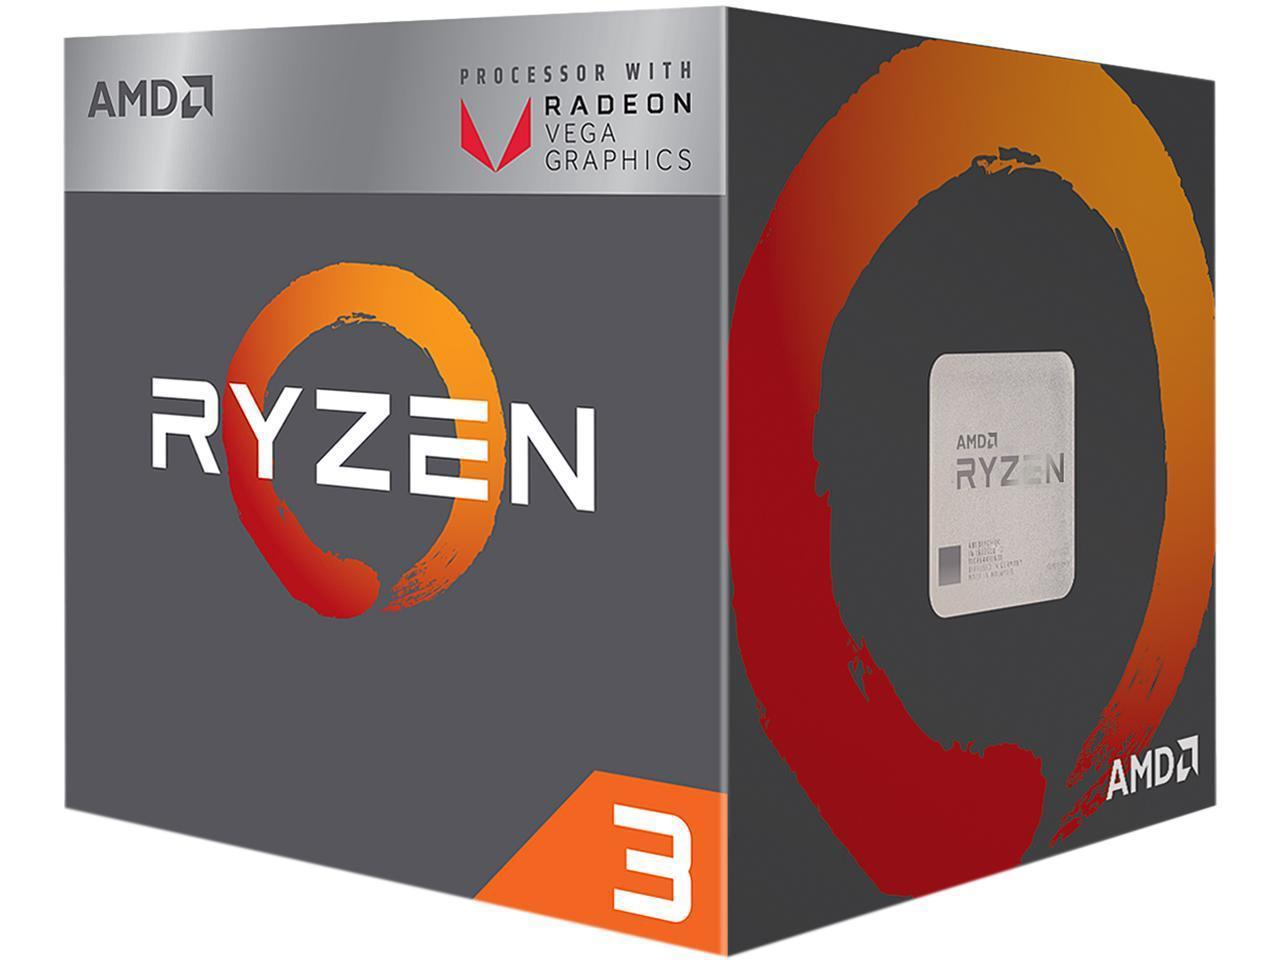 Процесор AMD RYZEN 3 2200G 4-Core 3.5 GHz (3.7 GHz Turbo) 6MB/65W/AM4/BOX